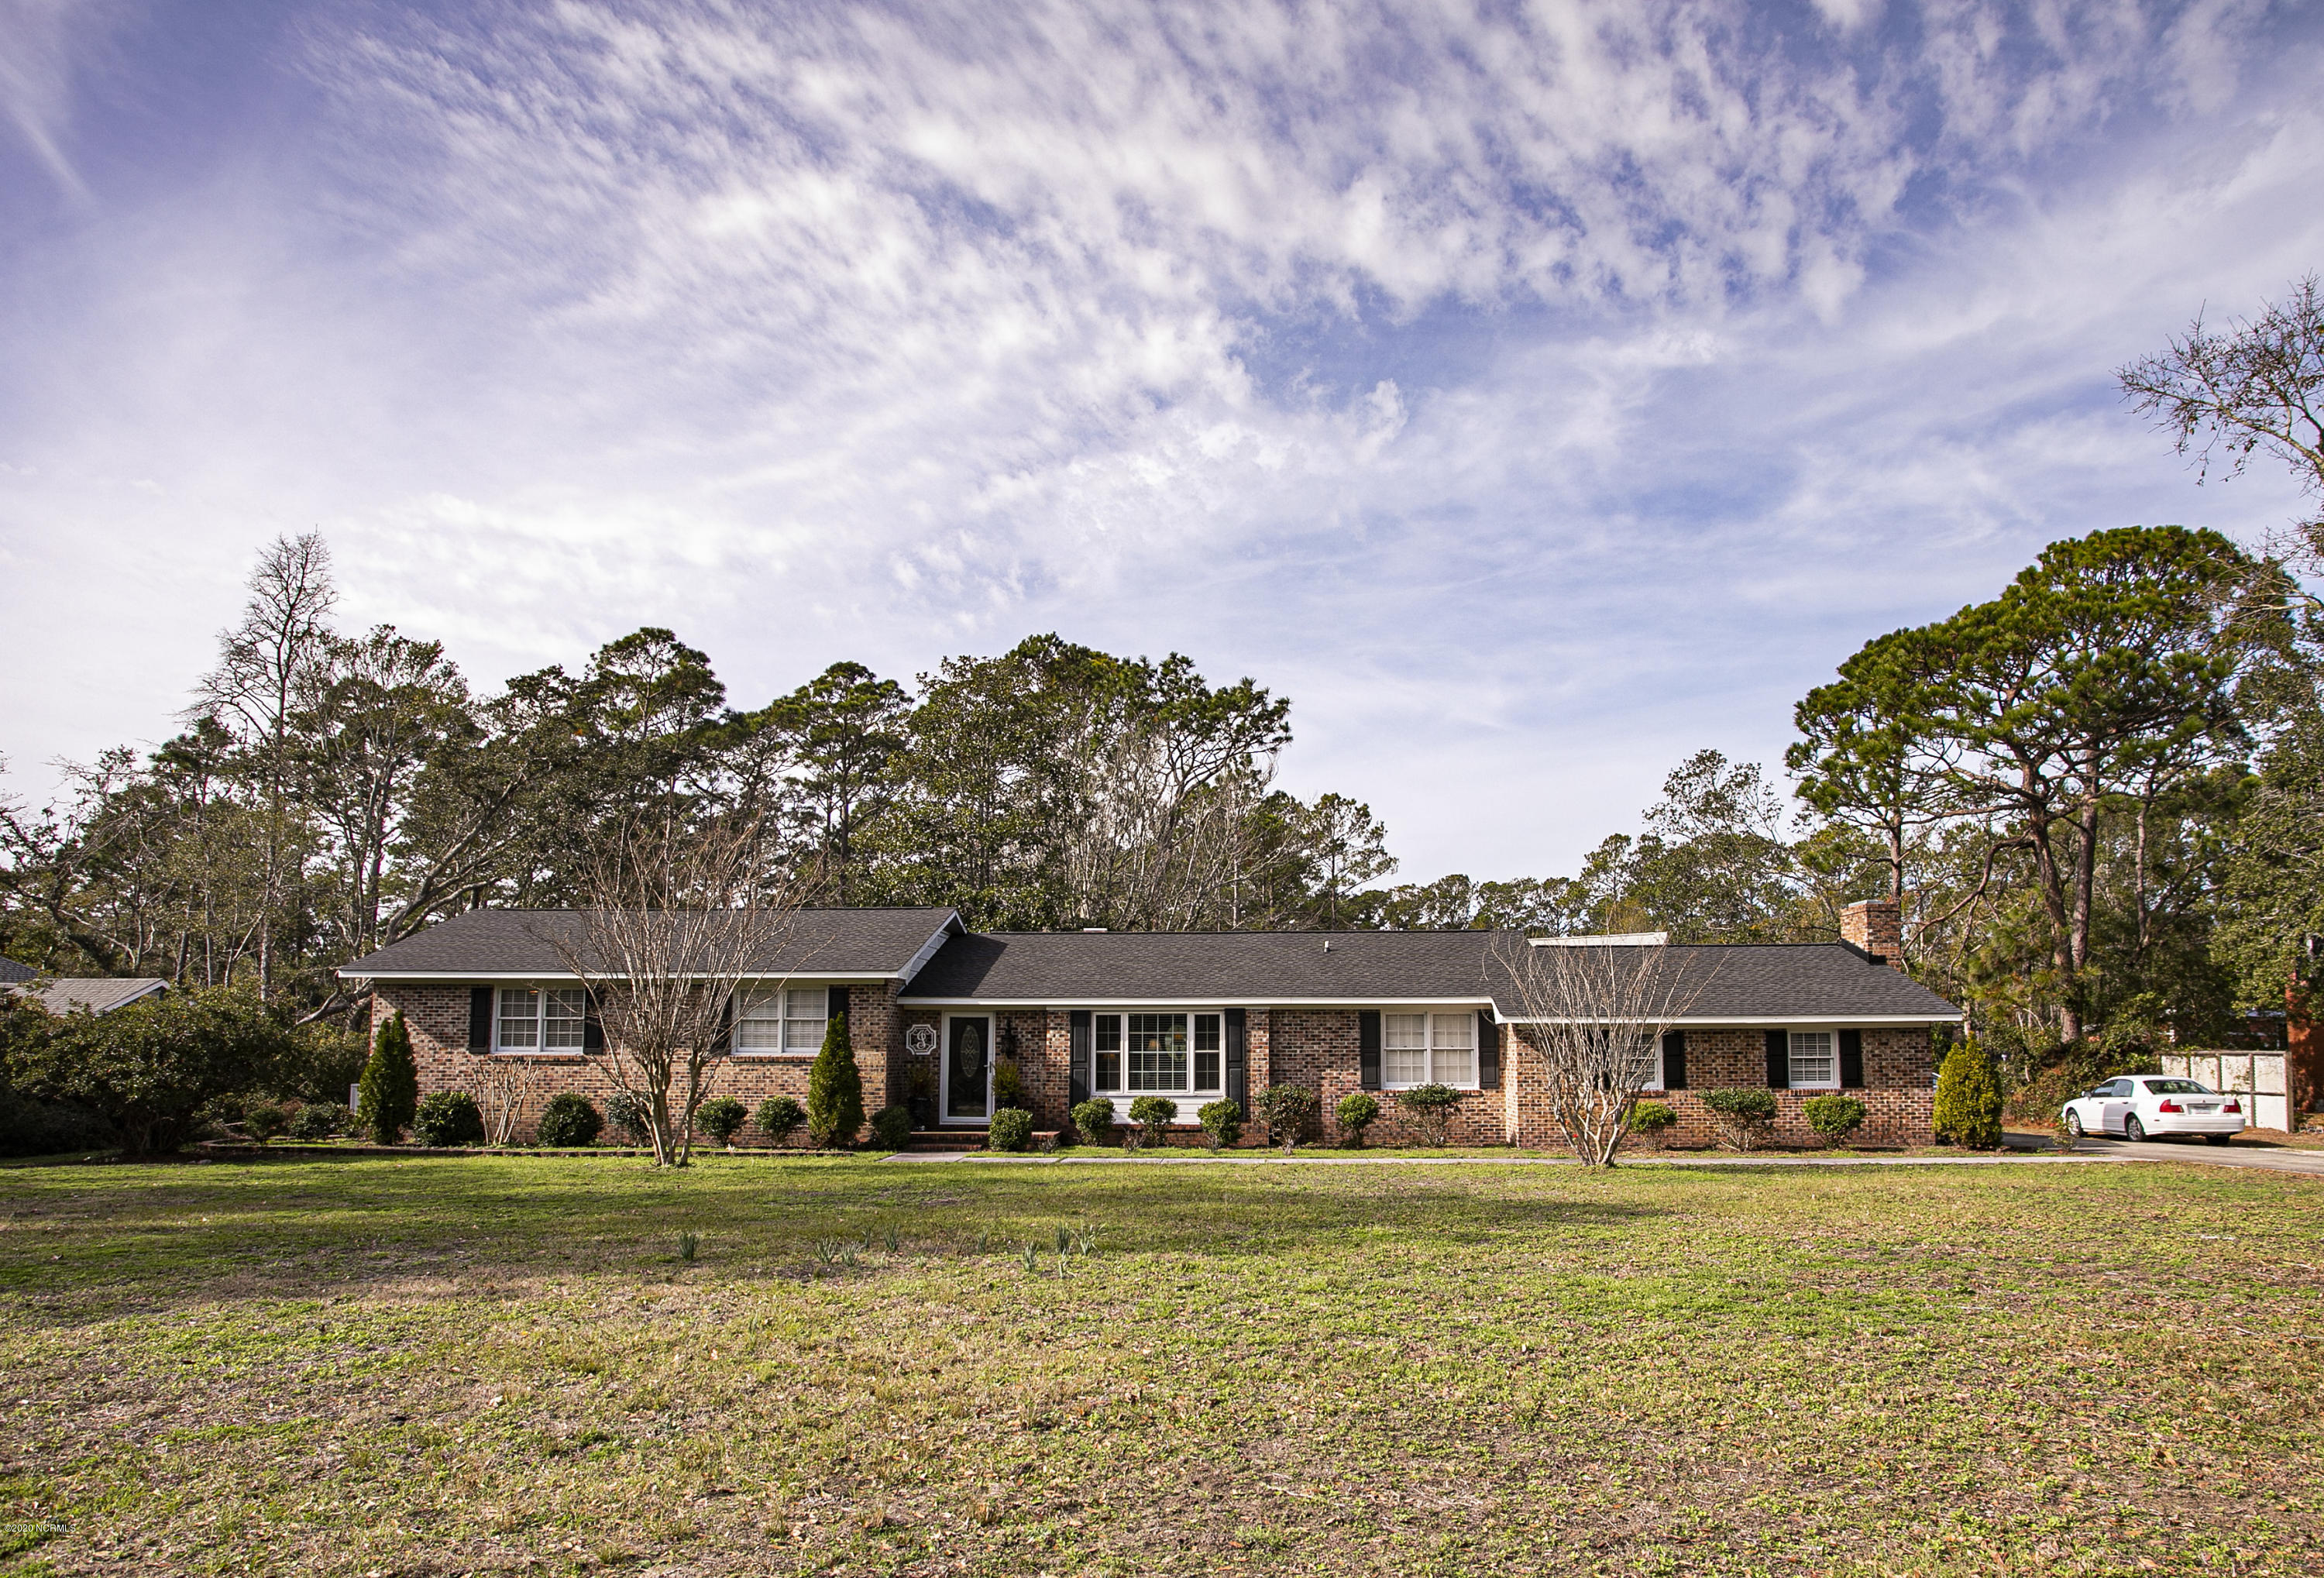 46 Yaupon Way Oak Island, NC 28465